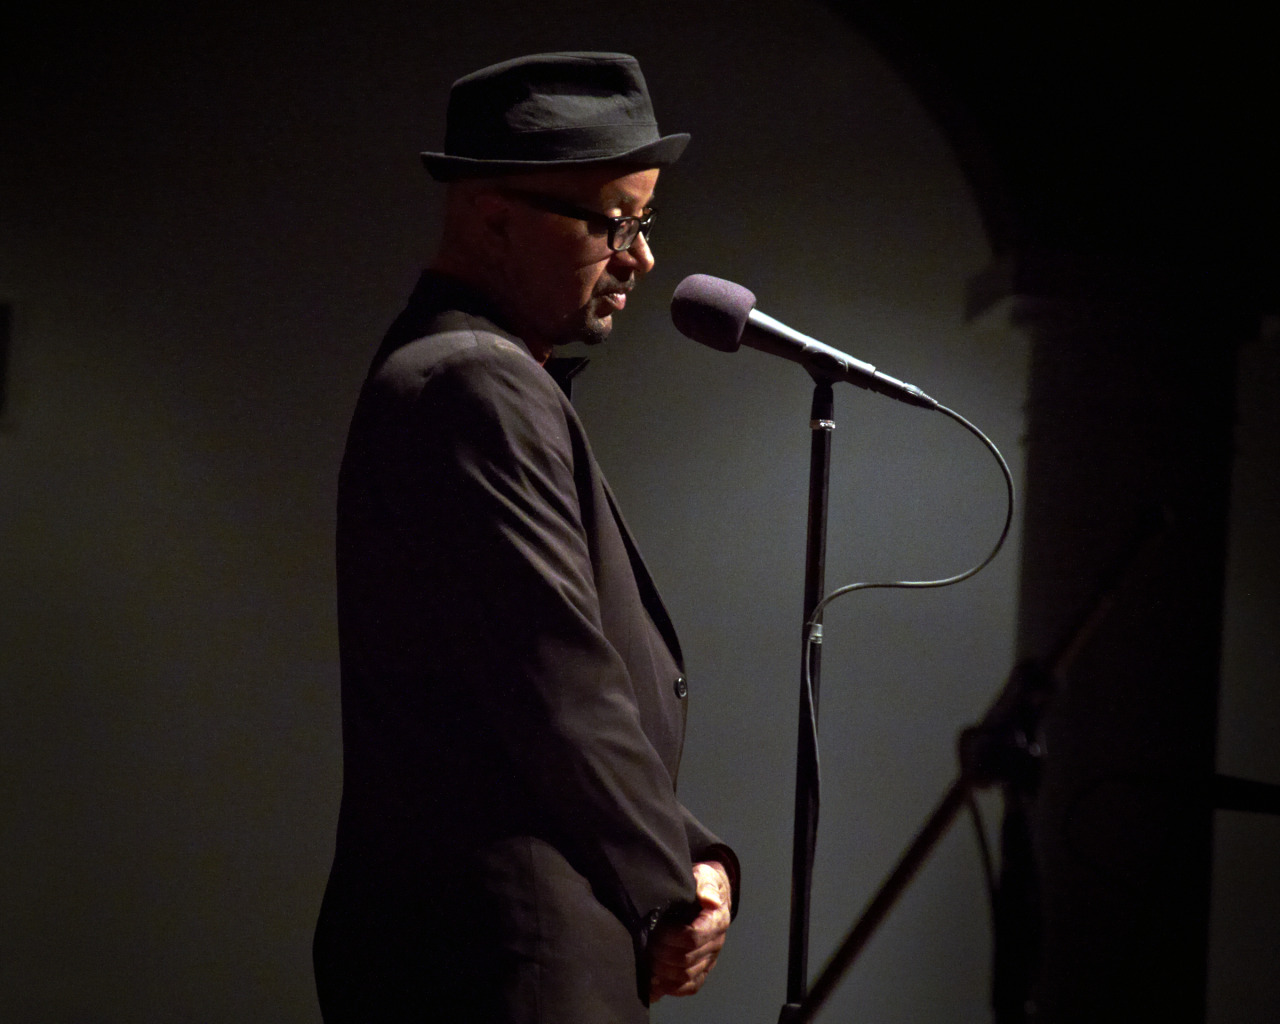 James McBride for the Moth.